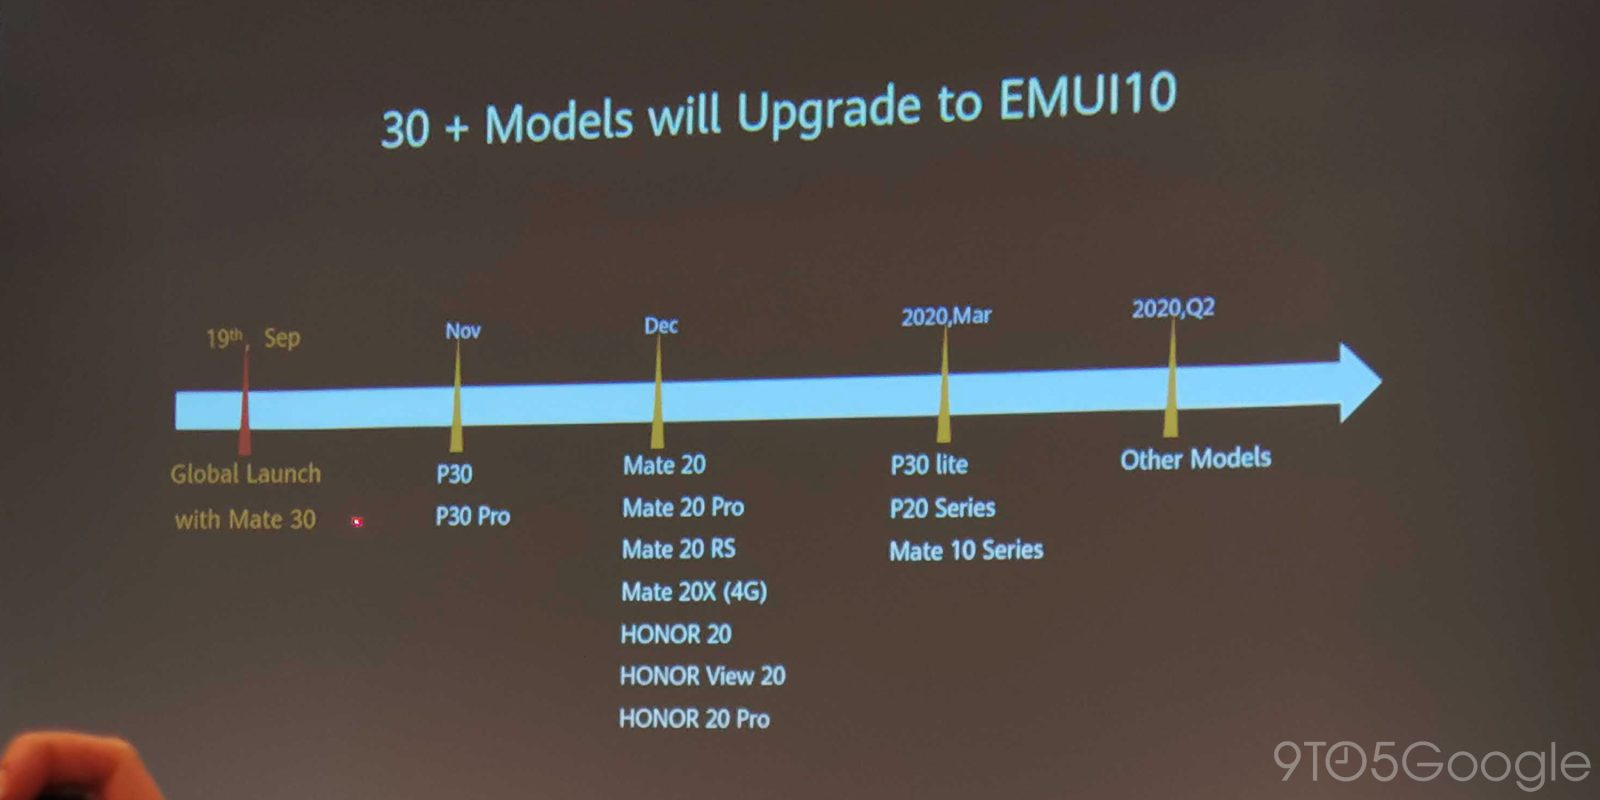 EMUI 10 road map confirms update heading to 30+ models